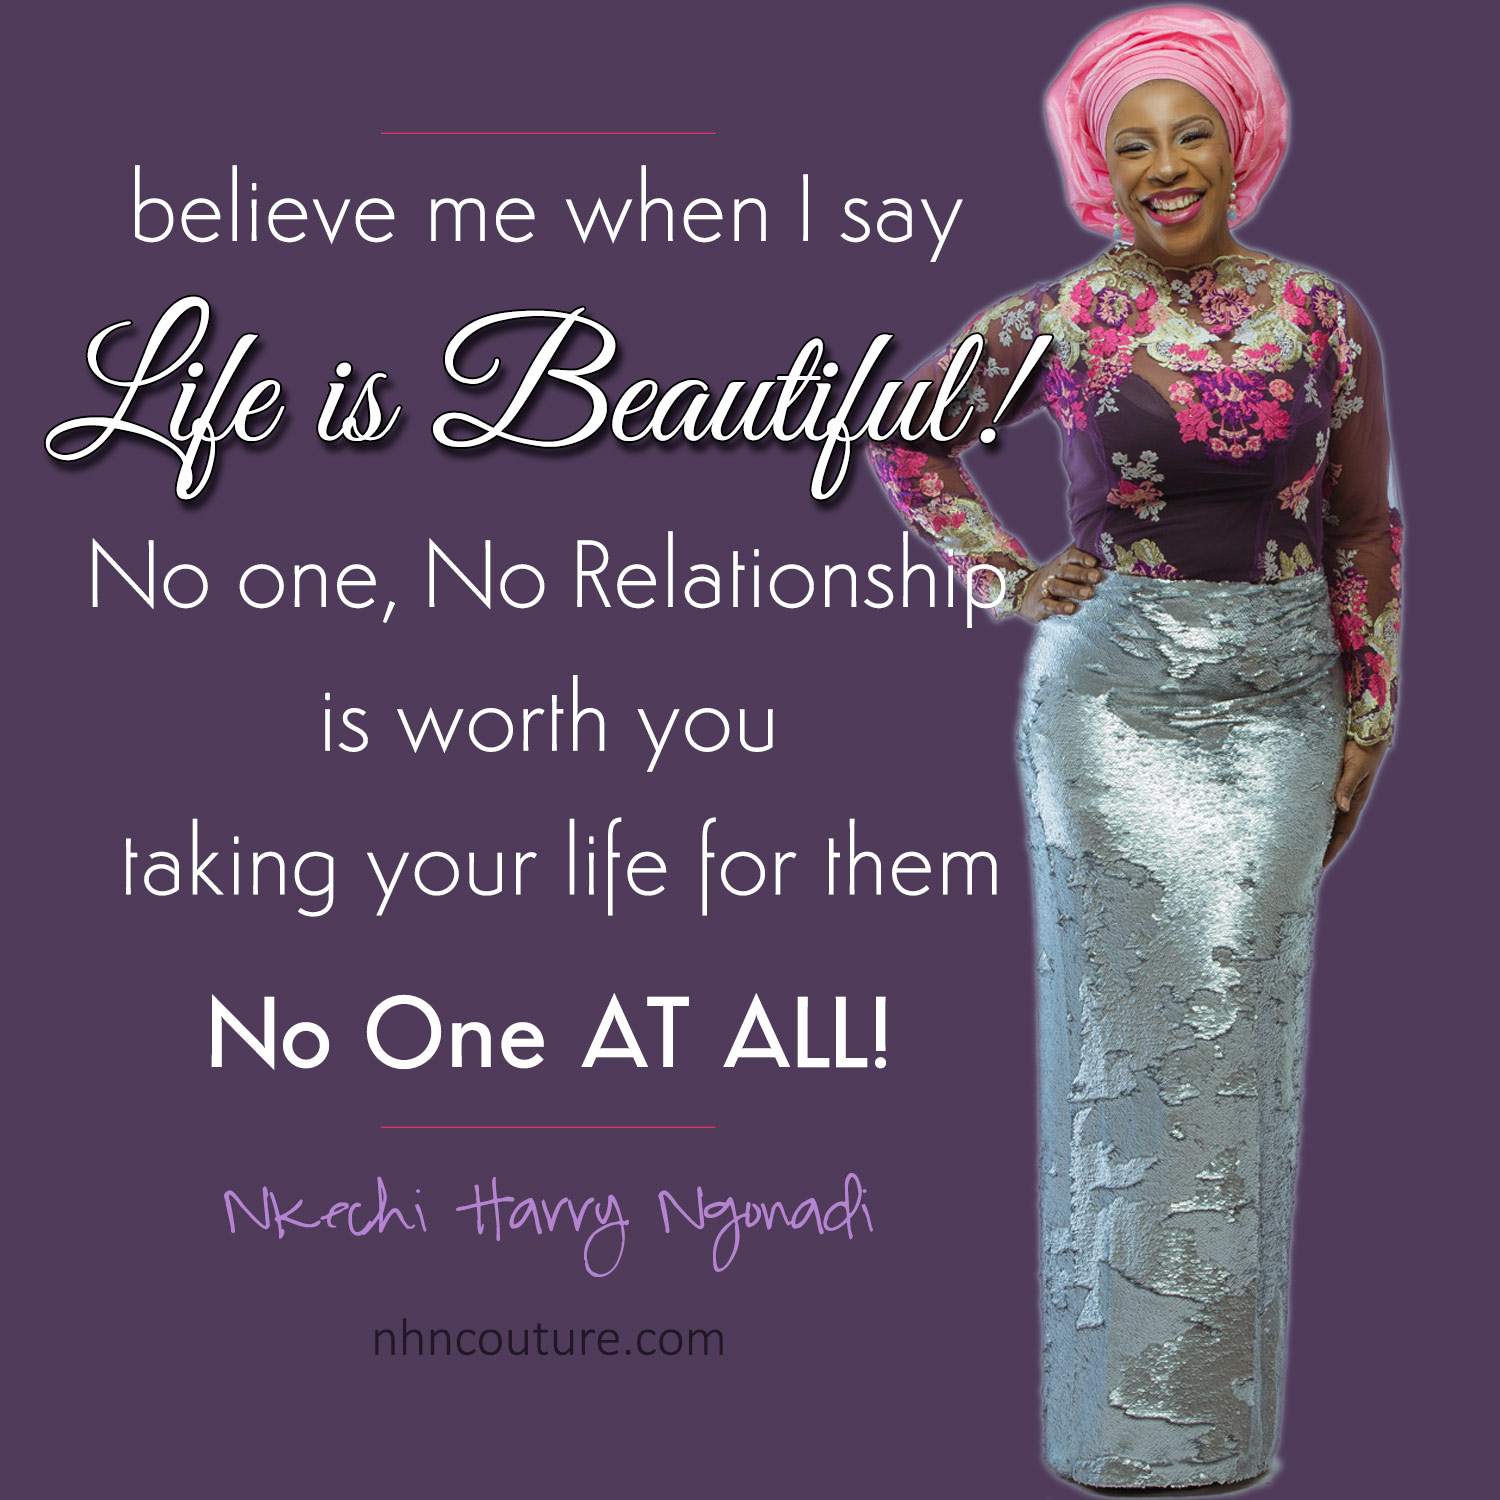 Life-is-Beautiful-Nkechi-Harry-Ngonadi-Blog